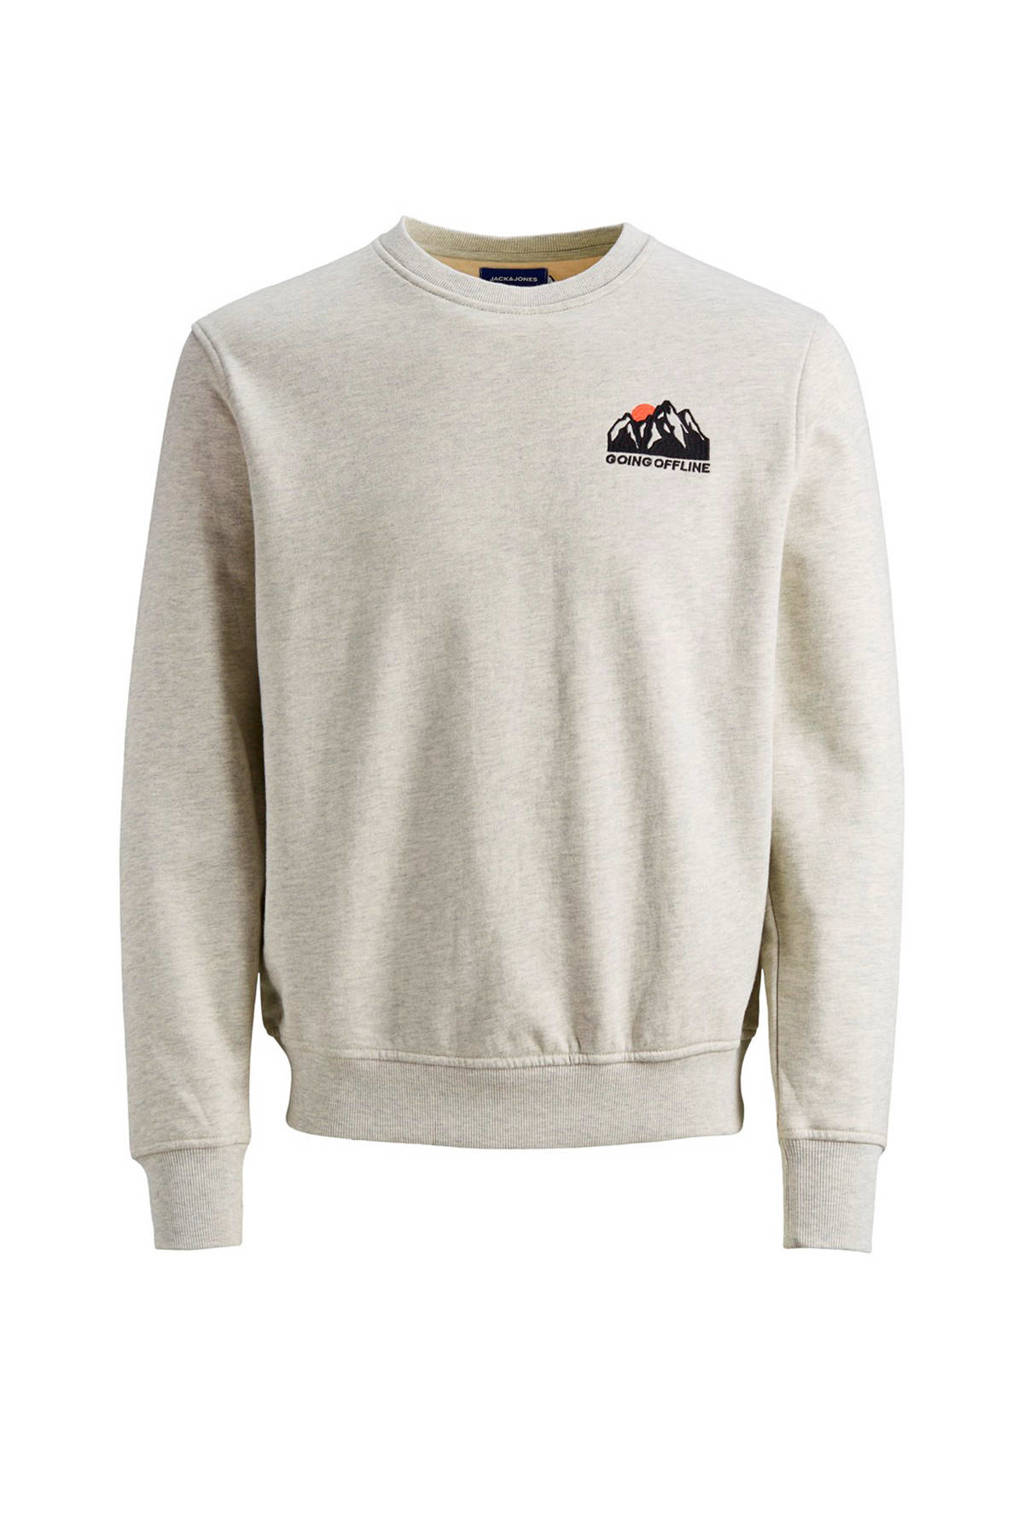 JACK & JONES ORIGINALS sweater met printopdruk grijs, Grijs